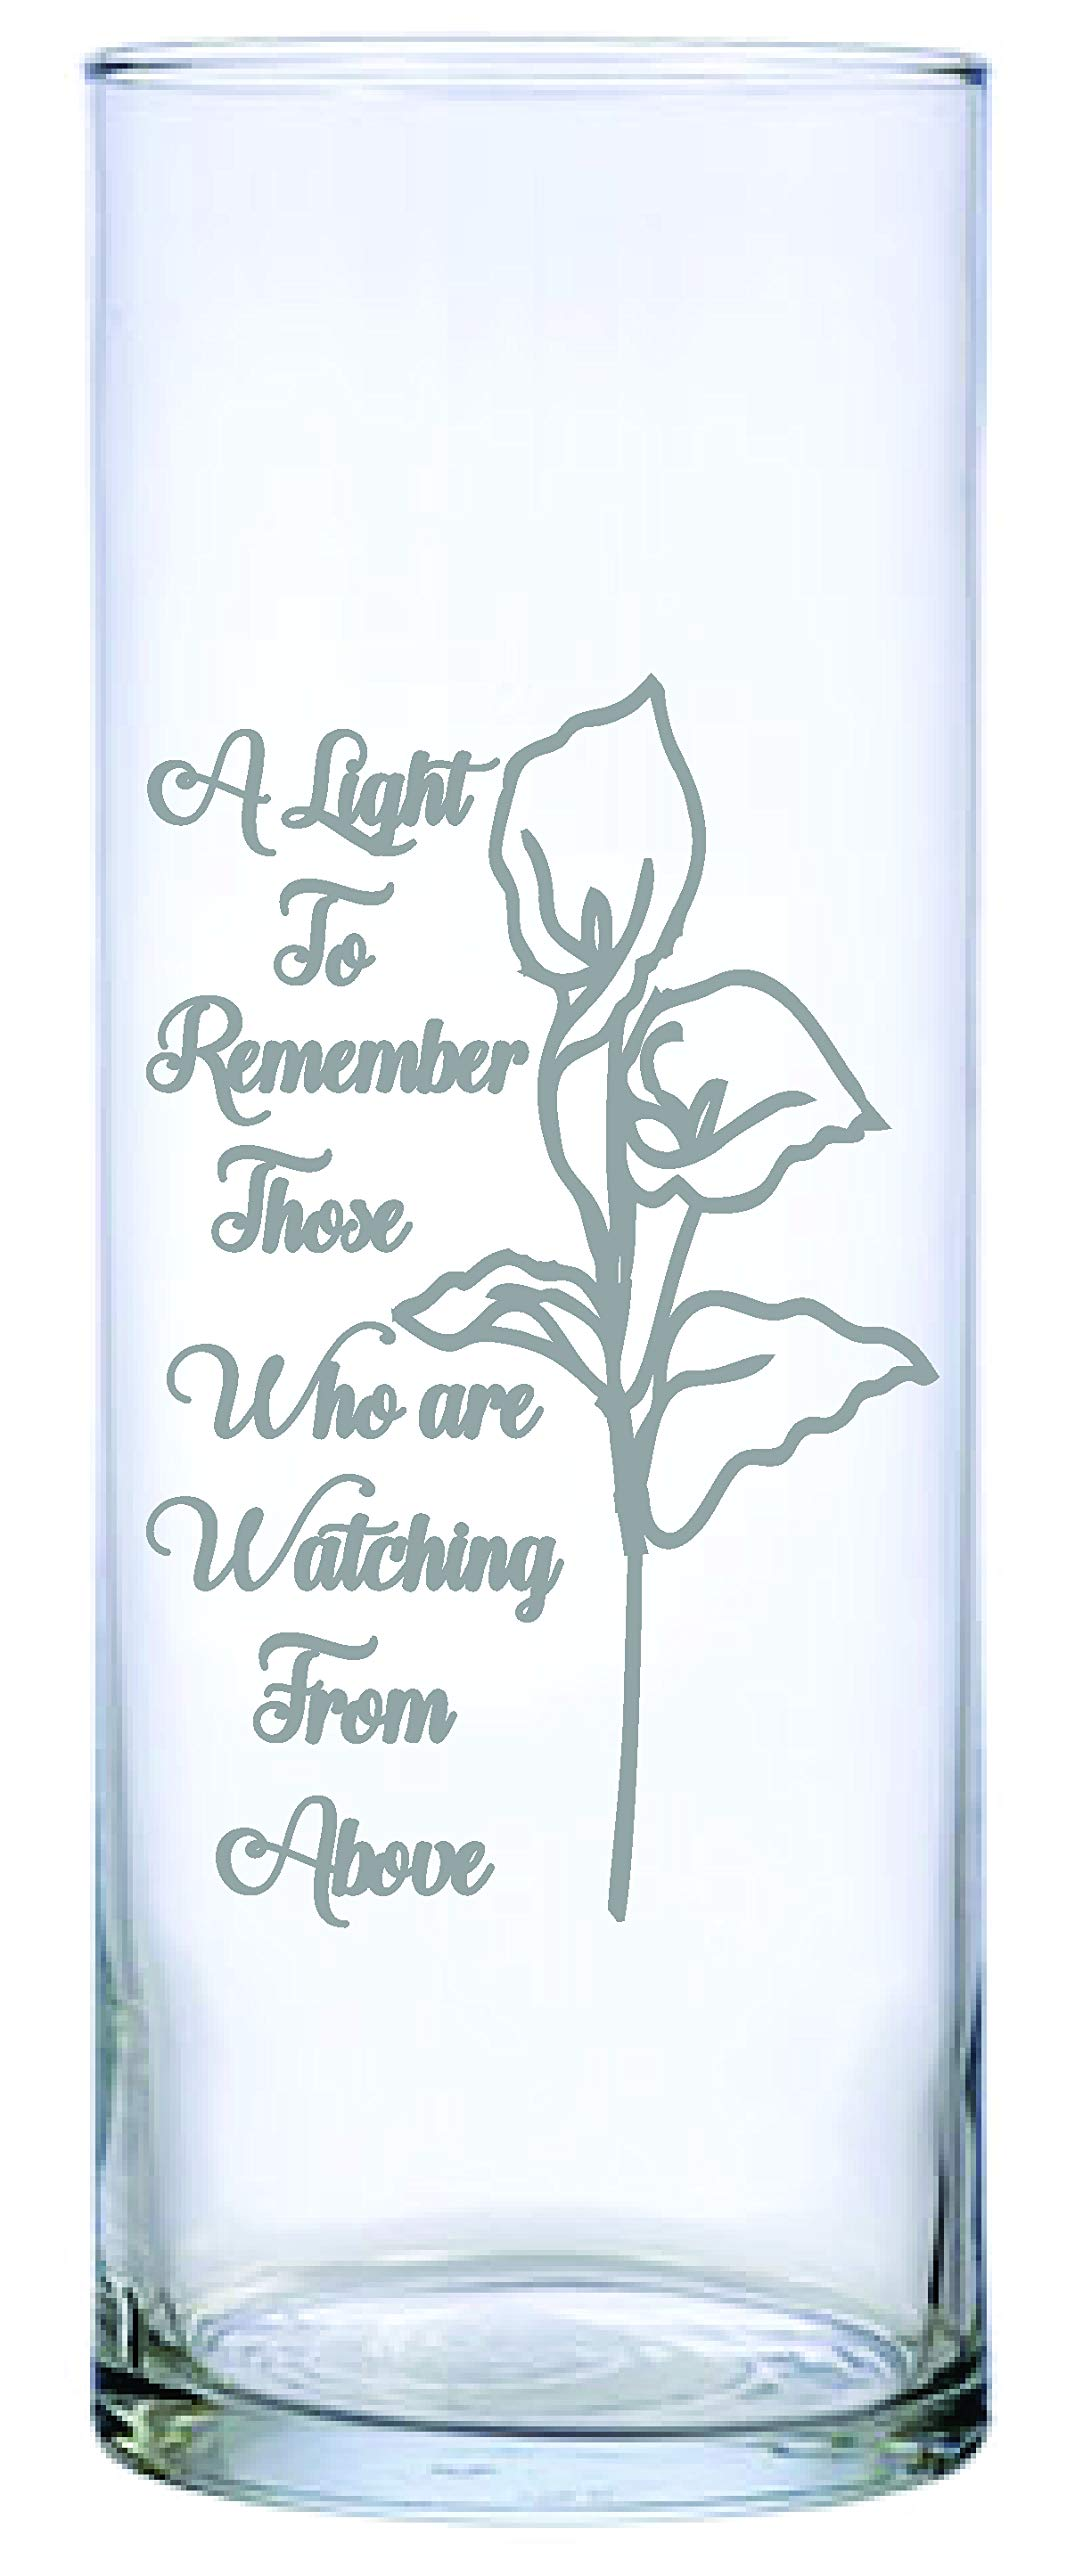 IE Laserware Traditional Lily Design Etched on This Beautiful Memorial Candle.